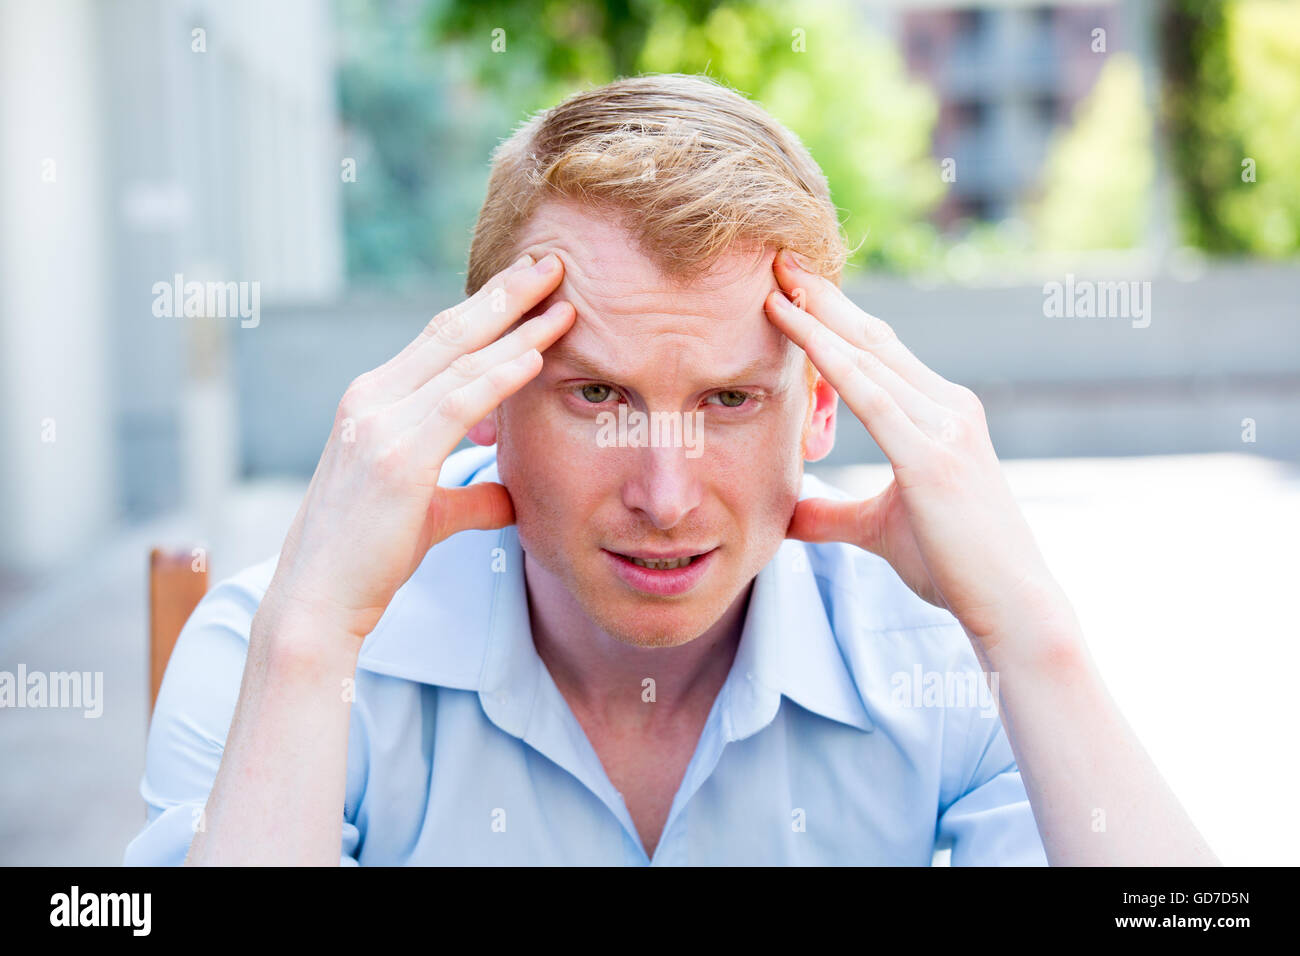 Closeup portrait, stressed young business man in blue shirt, hands on head with bad headache, isolated background - Stock Image